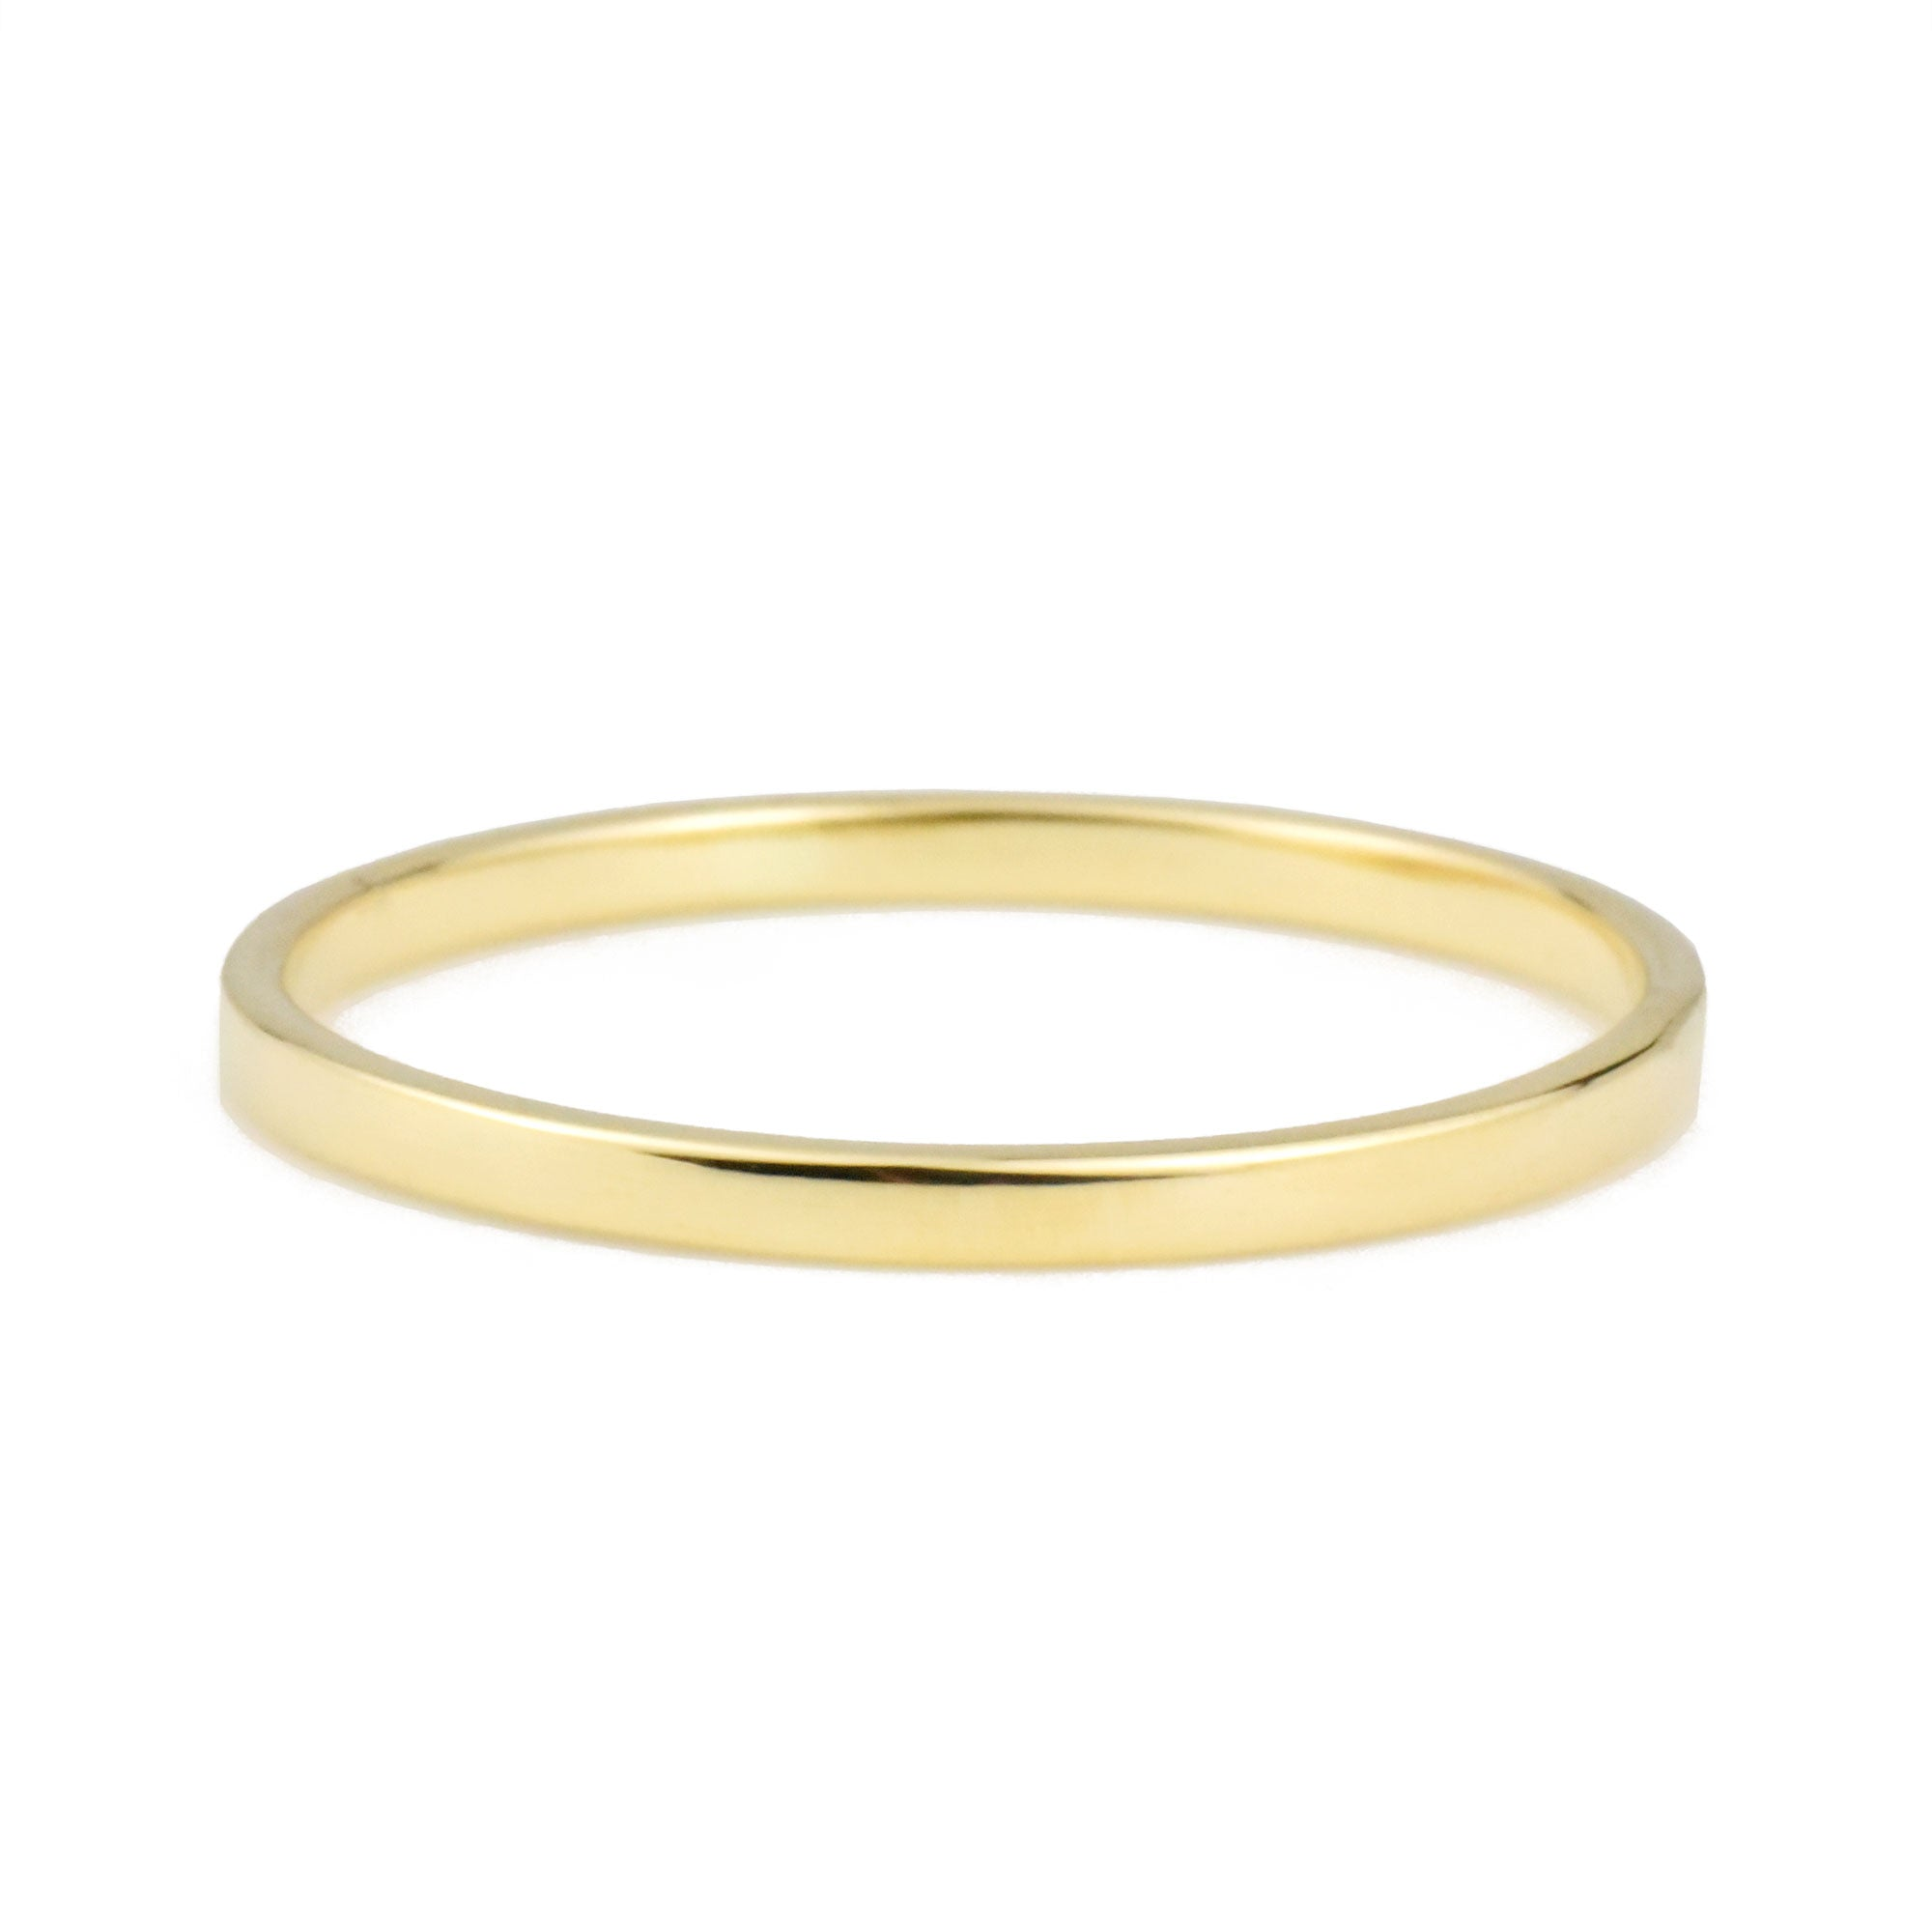 1.5mm Classic Domed Wedding Band